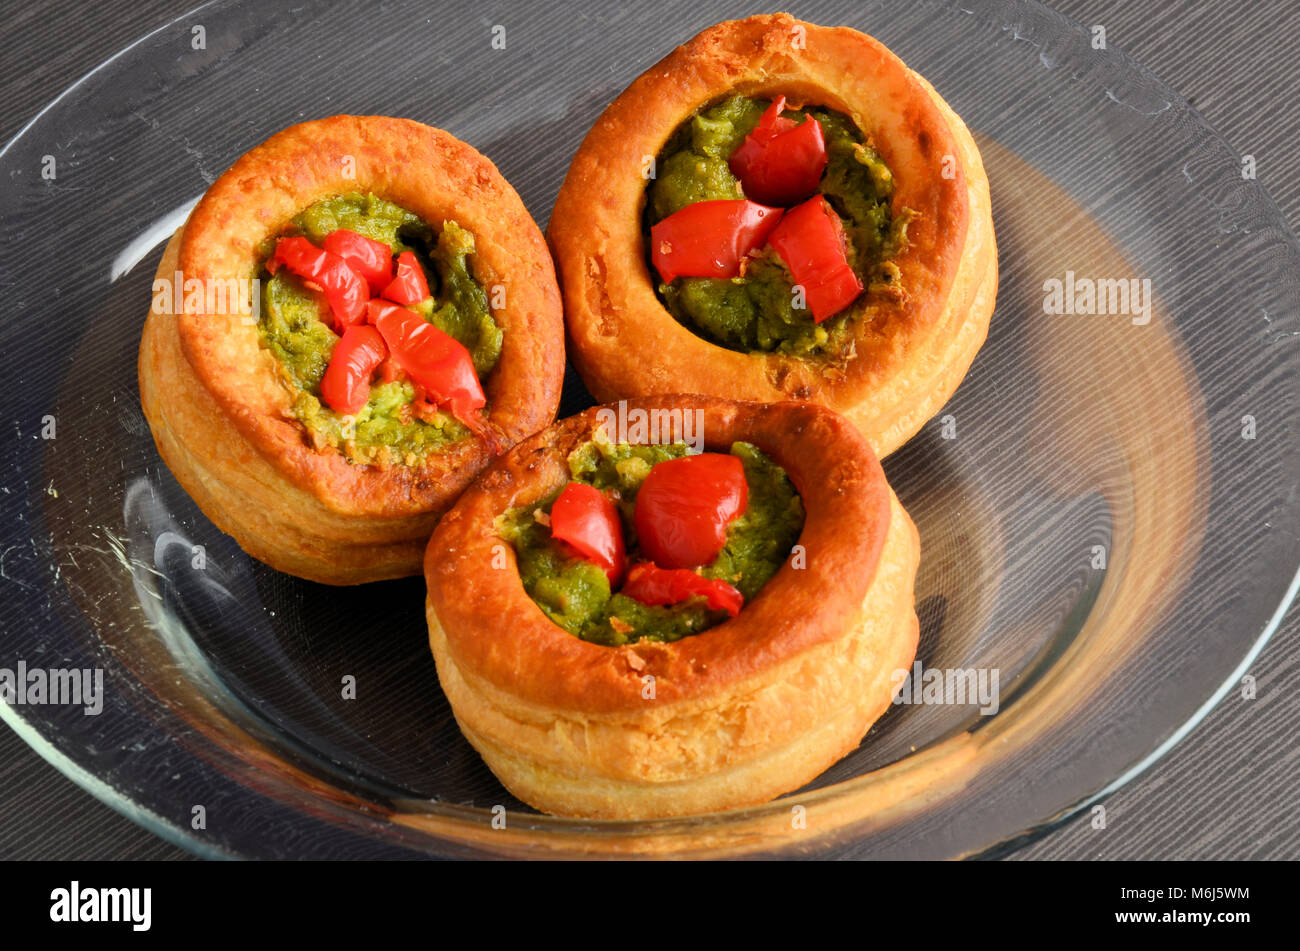 Vol-au-vent with mushroom and chicken, in a glass plate - Stock Image